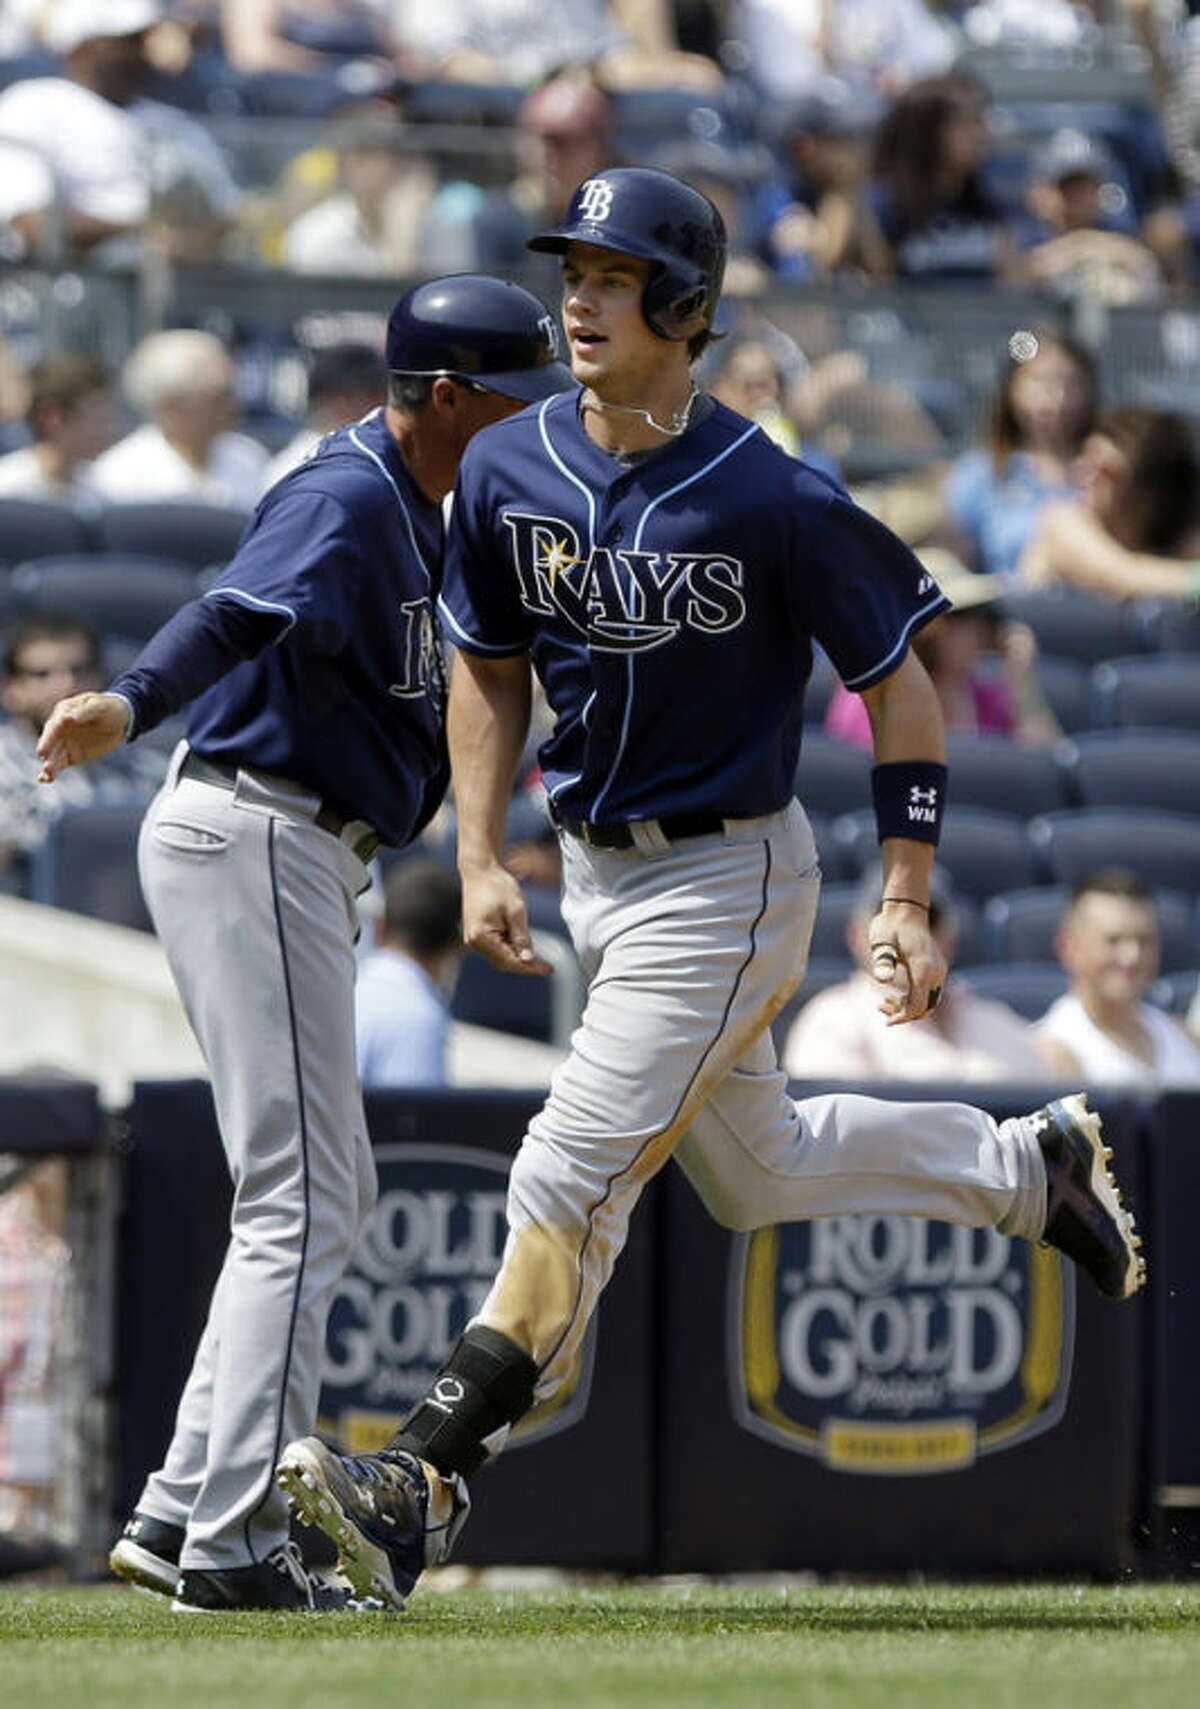 Tampa Bay Rays' Wil Myers heads to home plate after hitting a grand slam during the sixth inning of a baseball game Saturday, June 22, 2013, in New York. (AP Photo/Frank Franklin II)